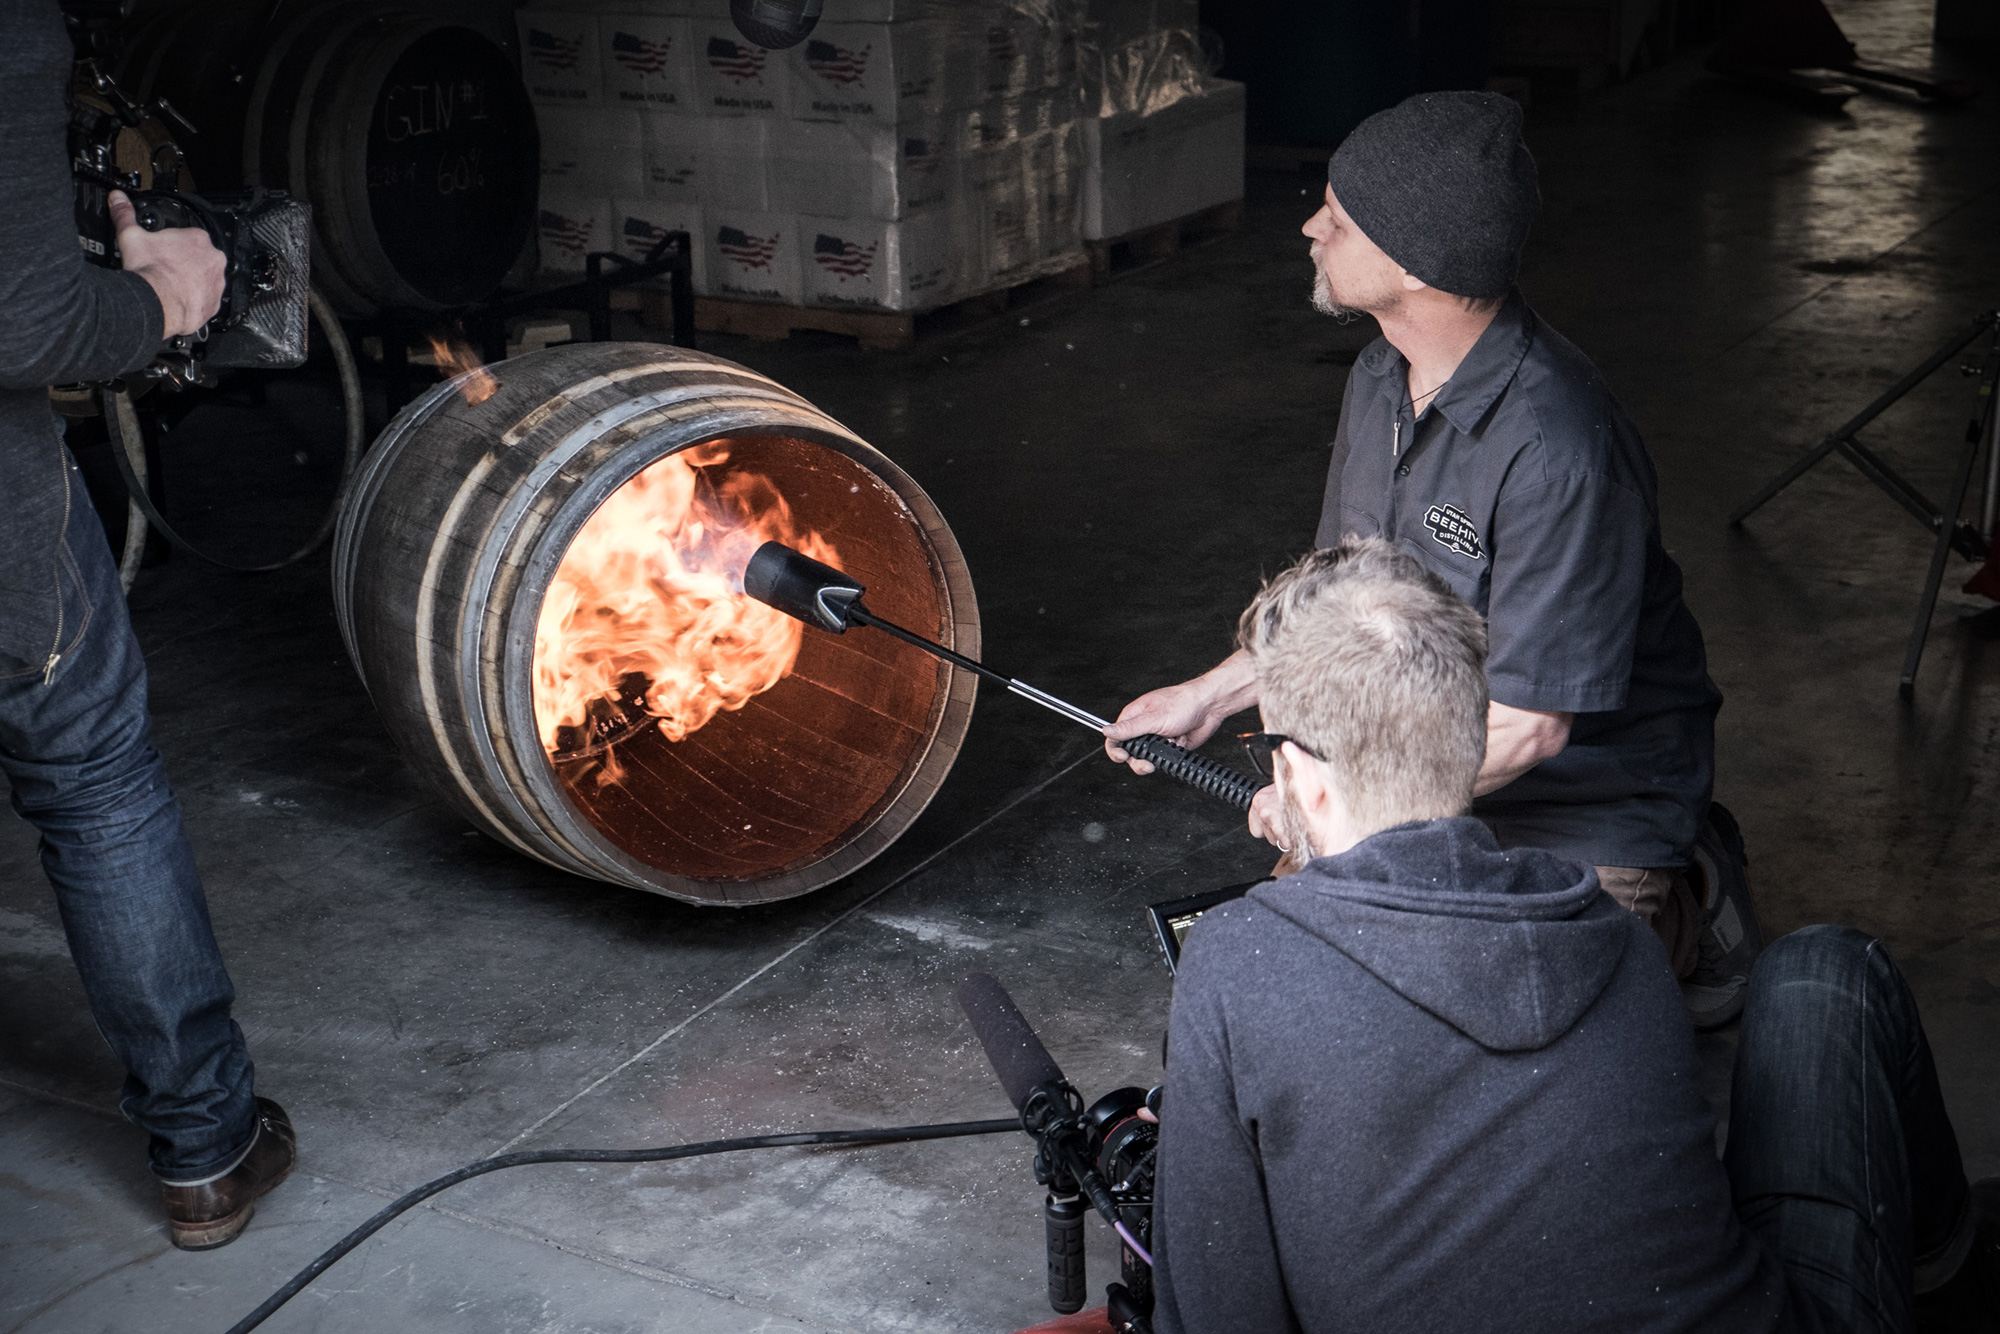 Beehive Distilling Small Batch Craft Gin Salt Lake City Utah 7